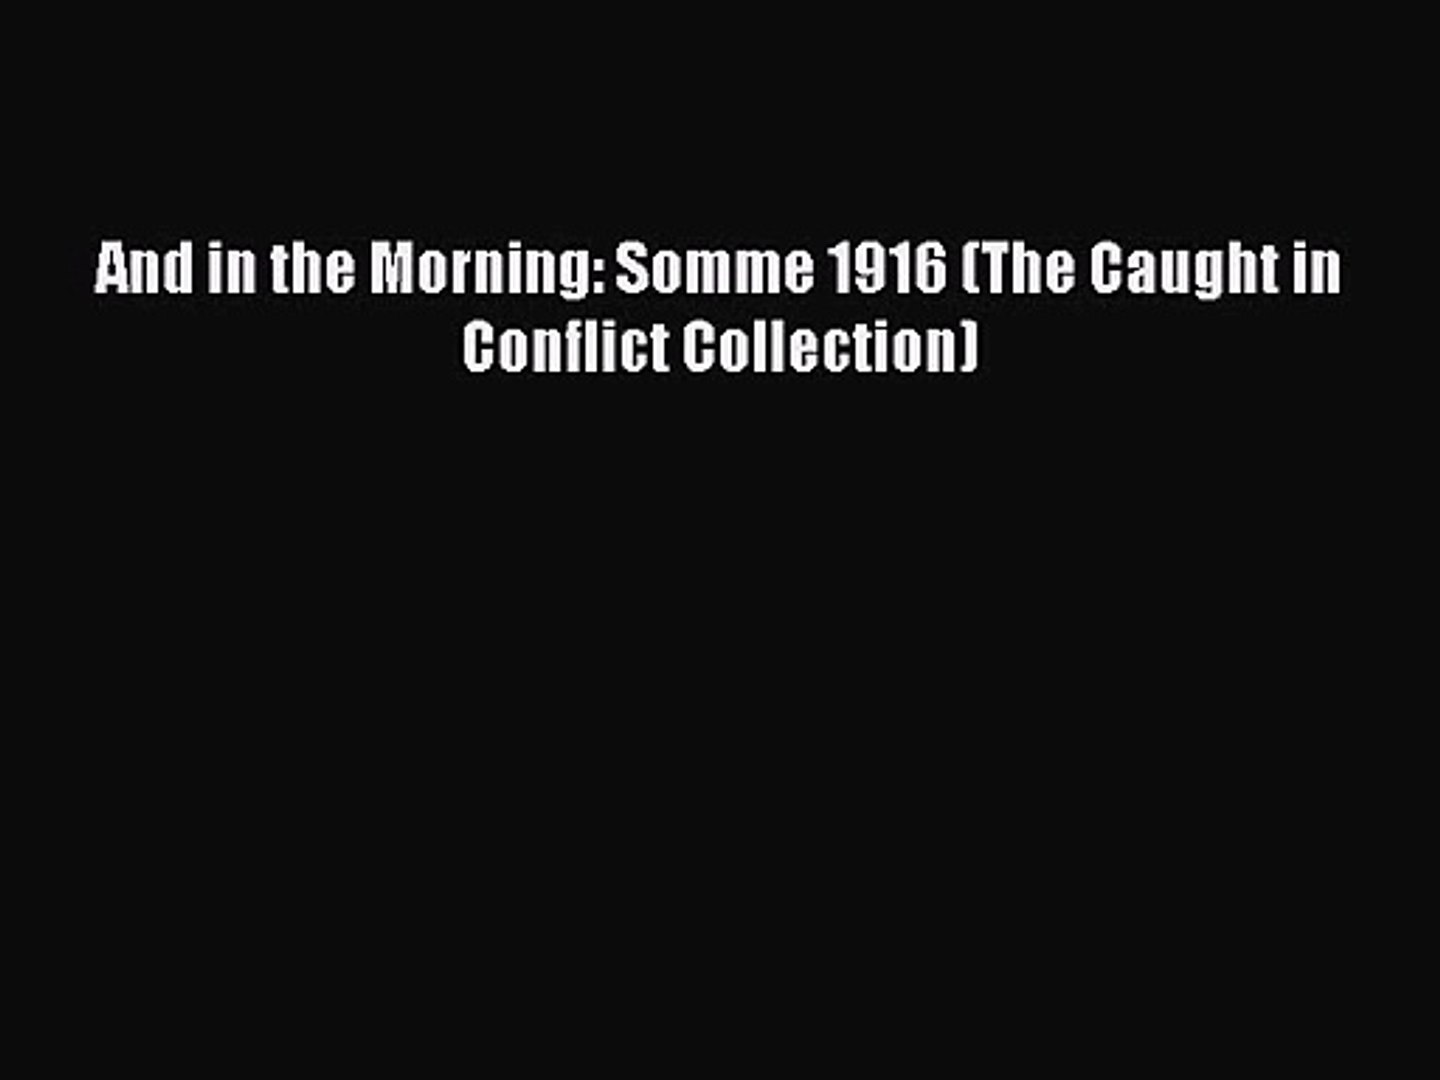 And in the Morning: Somme 1916 (The Caught in Conflict Collection) [PDF Download] And in the